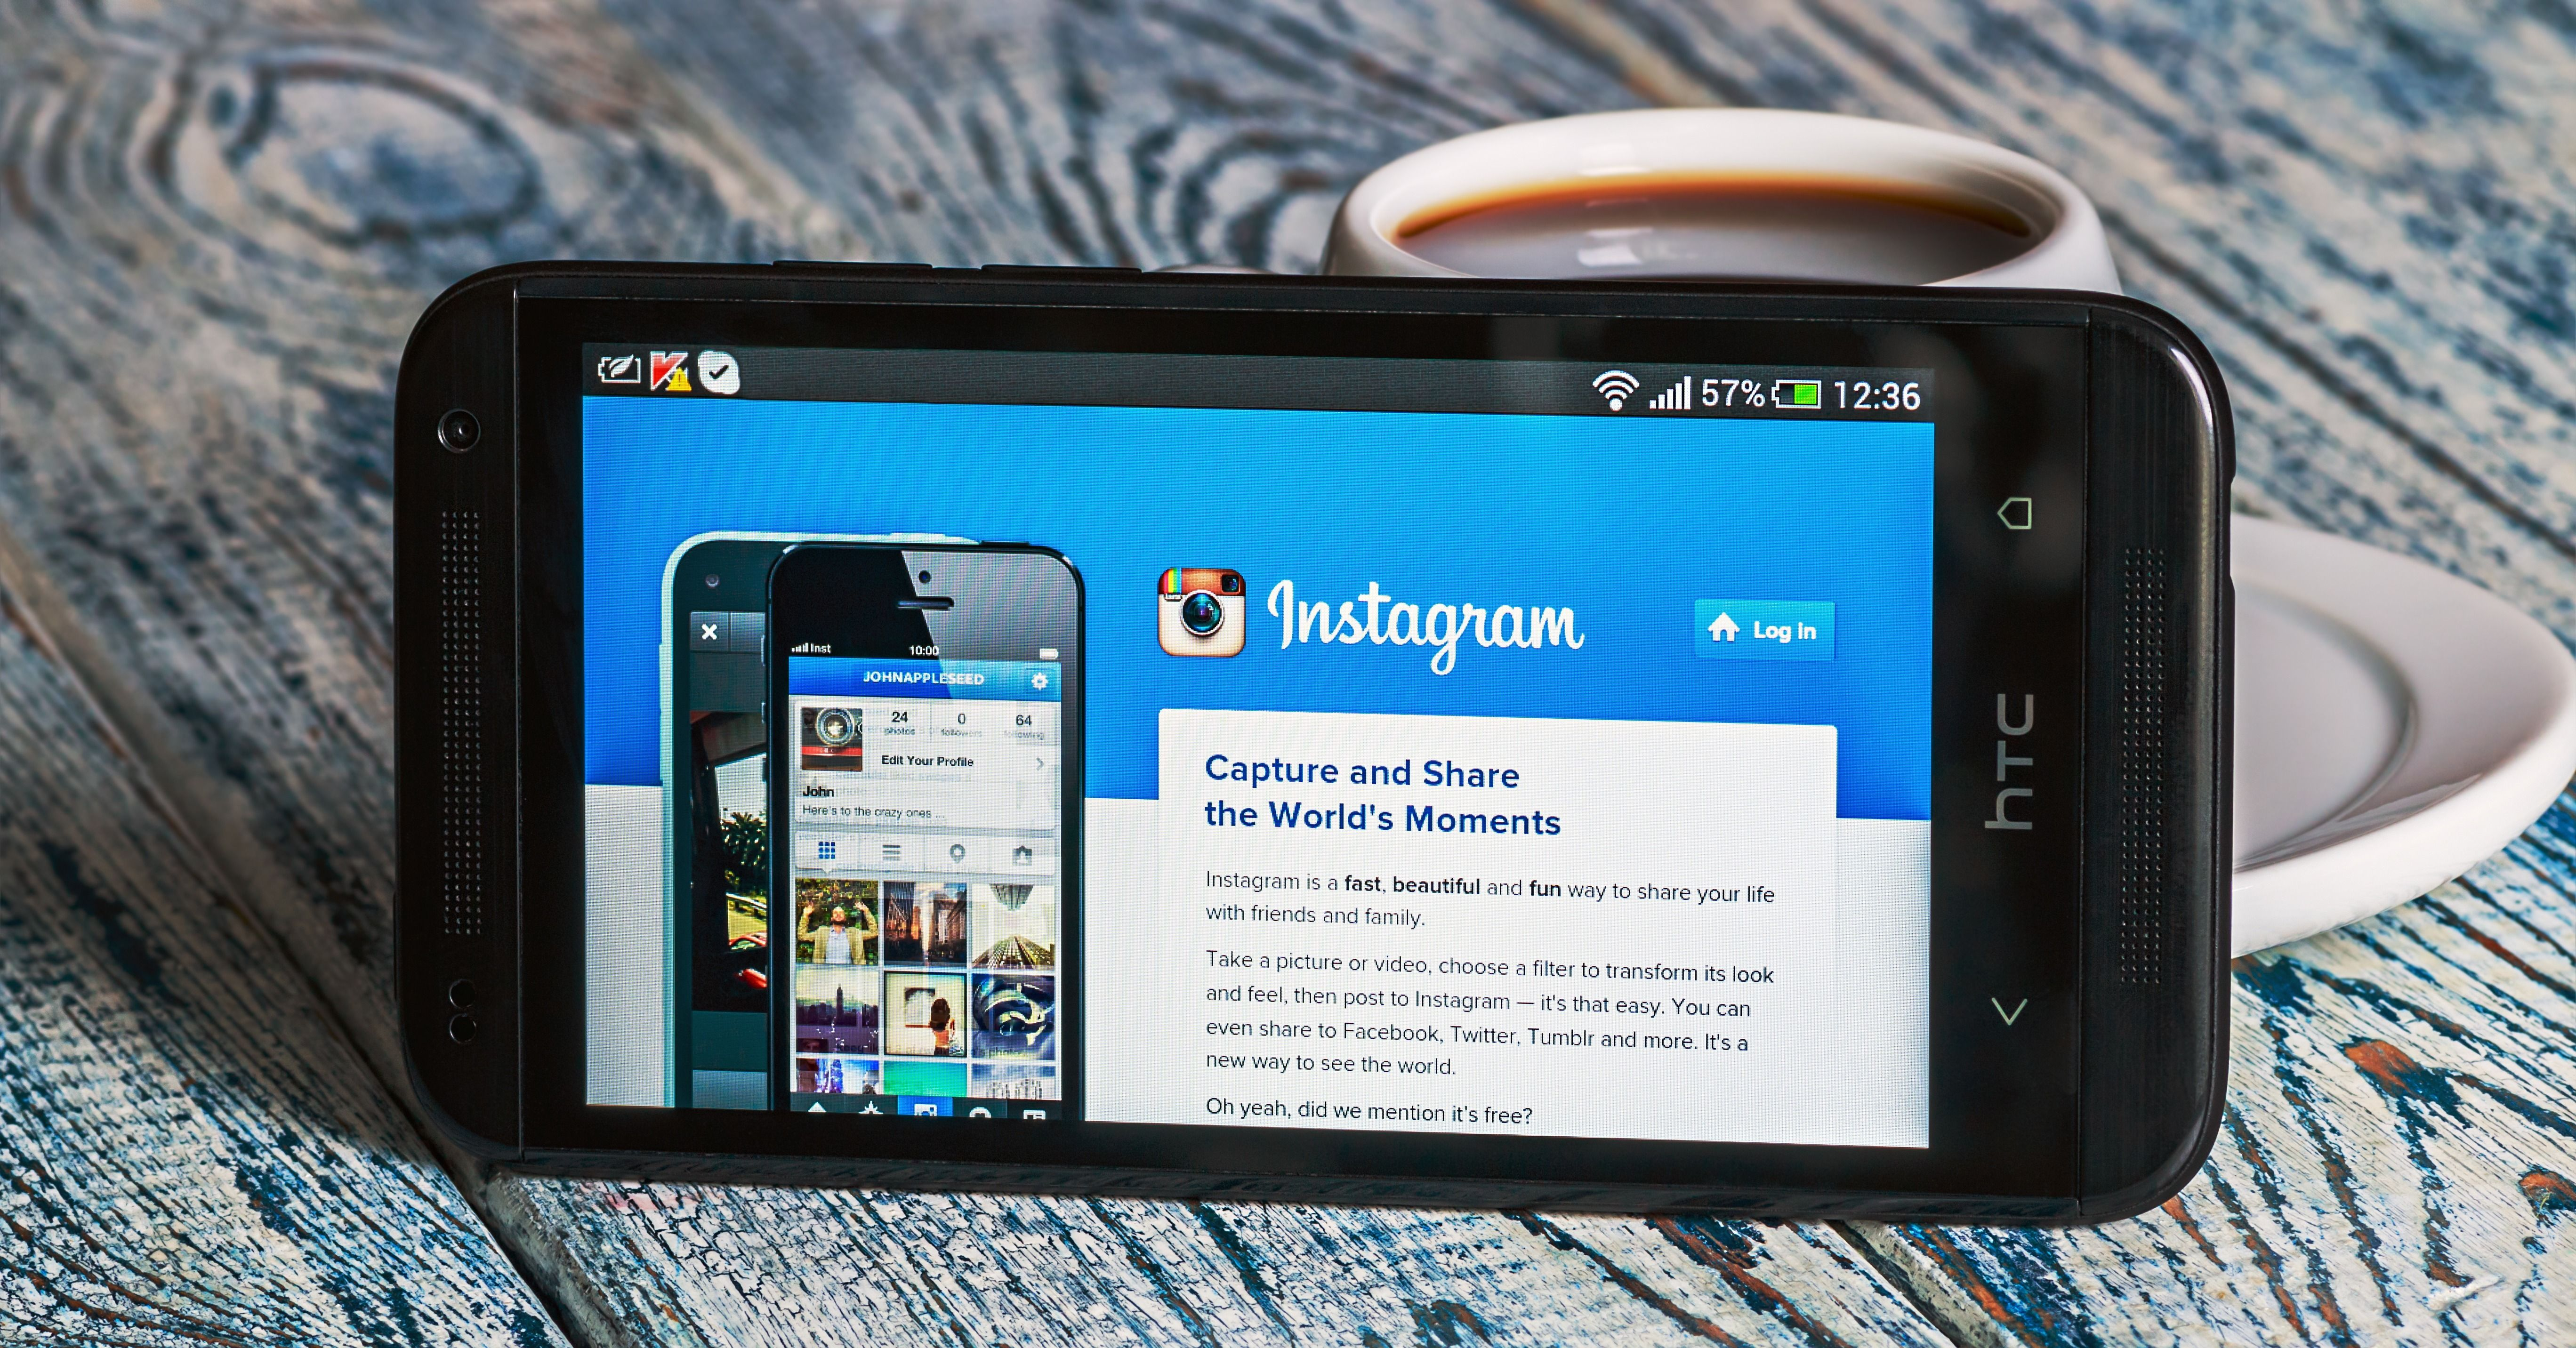 Here's the Right Way to Repost Instagram Photos Selling